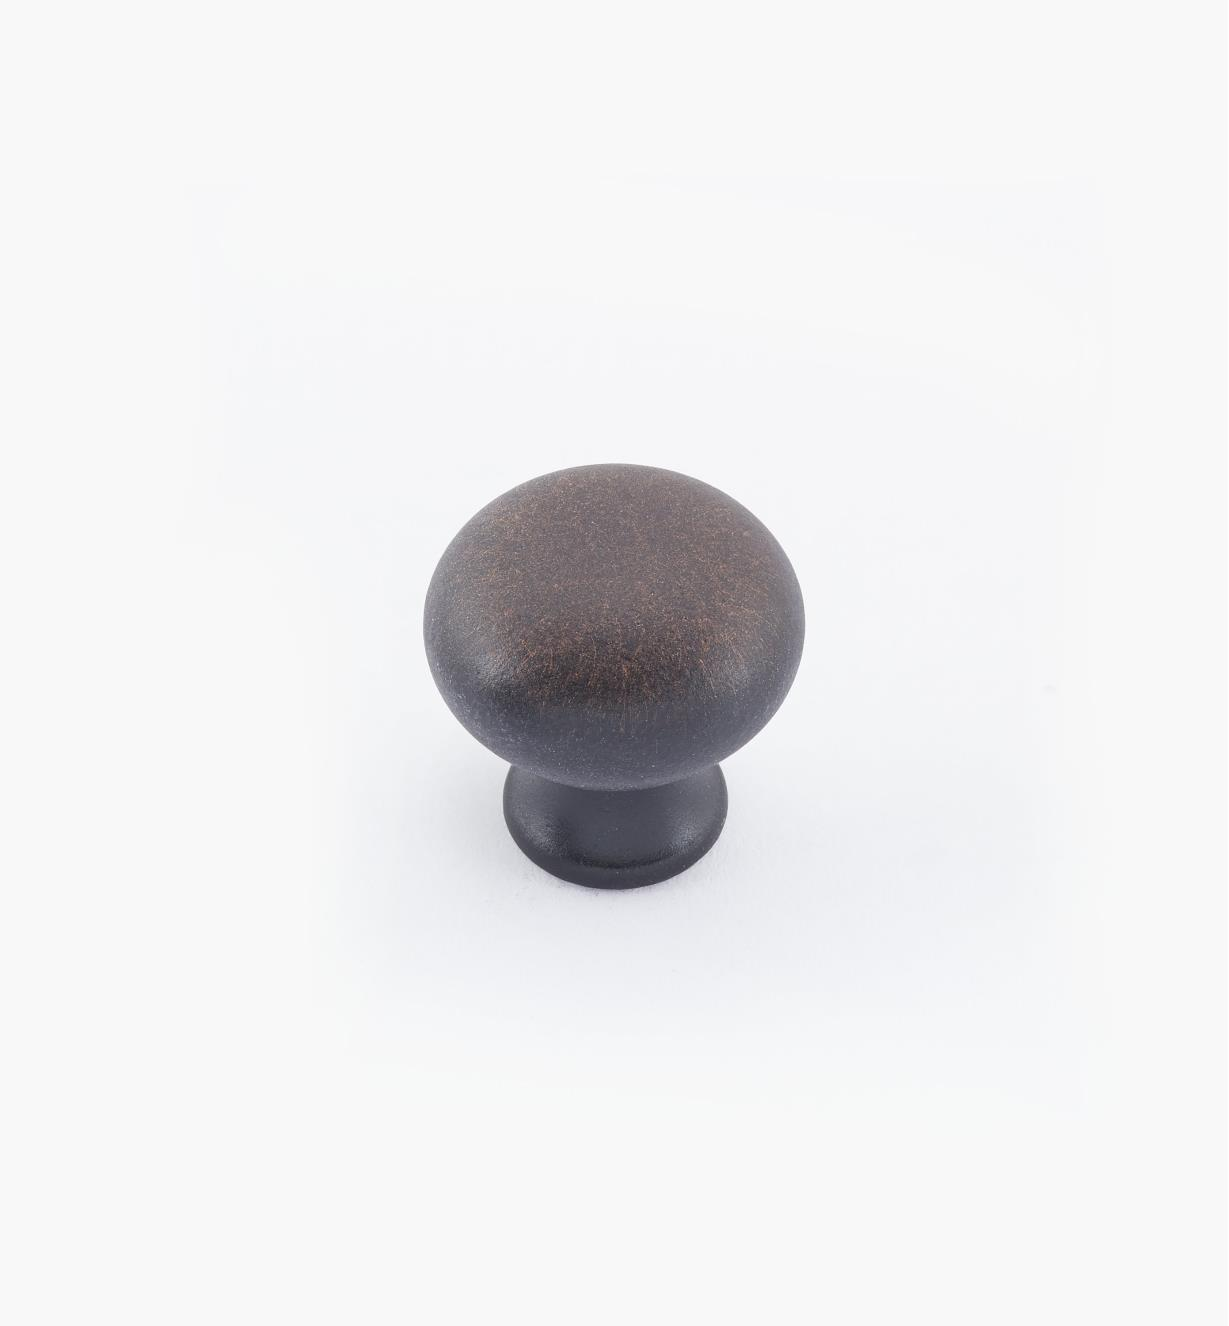 "02W1442 -  3/4"" × 3/4"" Round Brass Knob, Weathered Bronze"